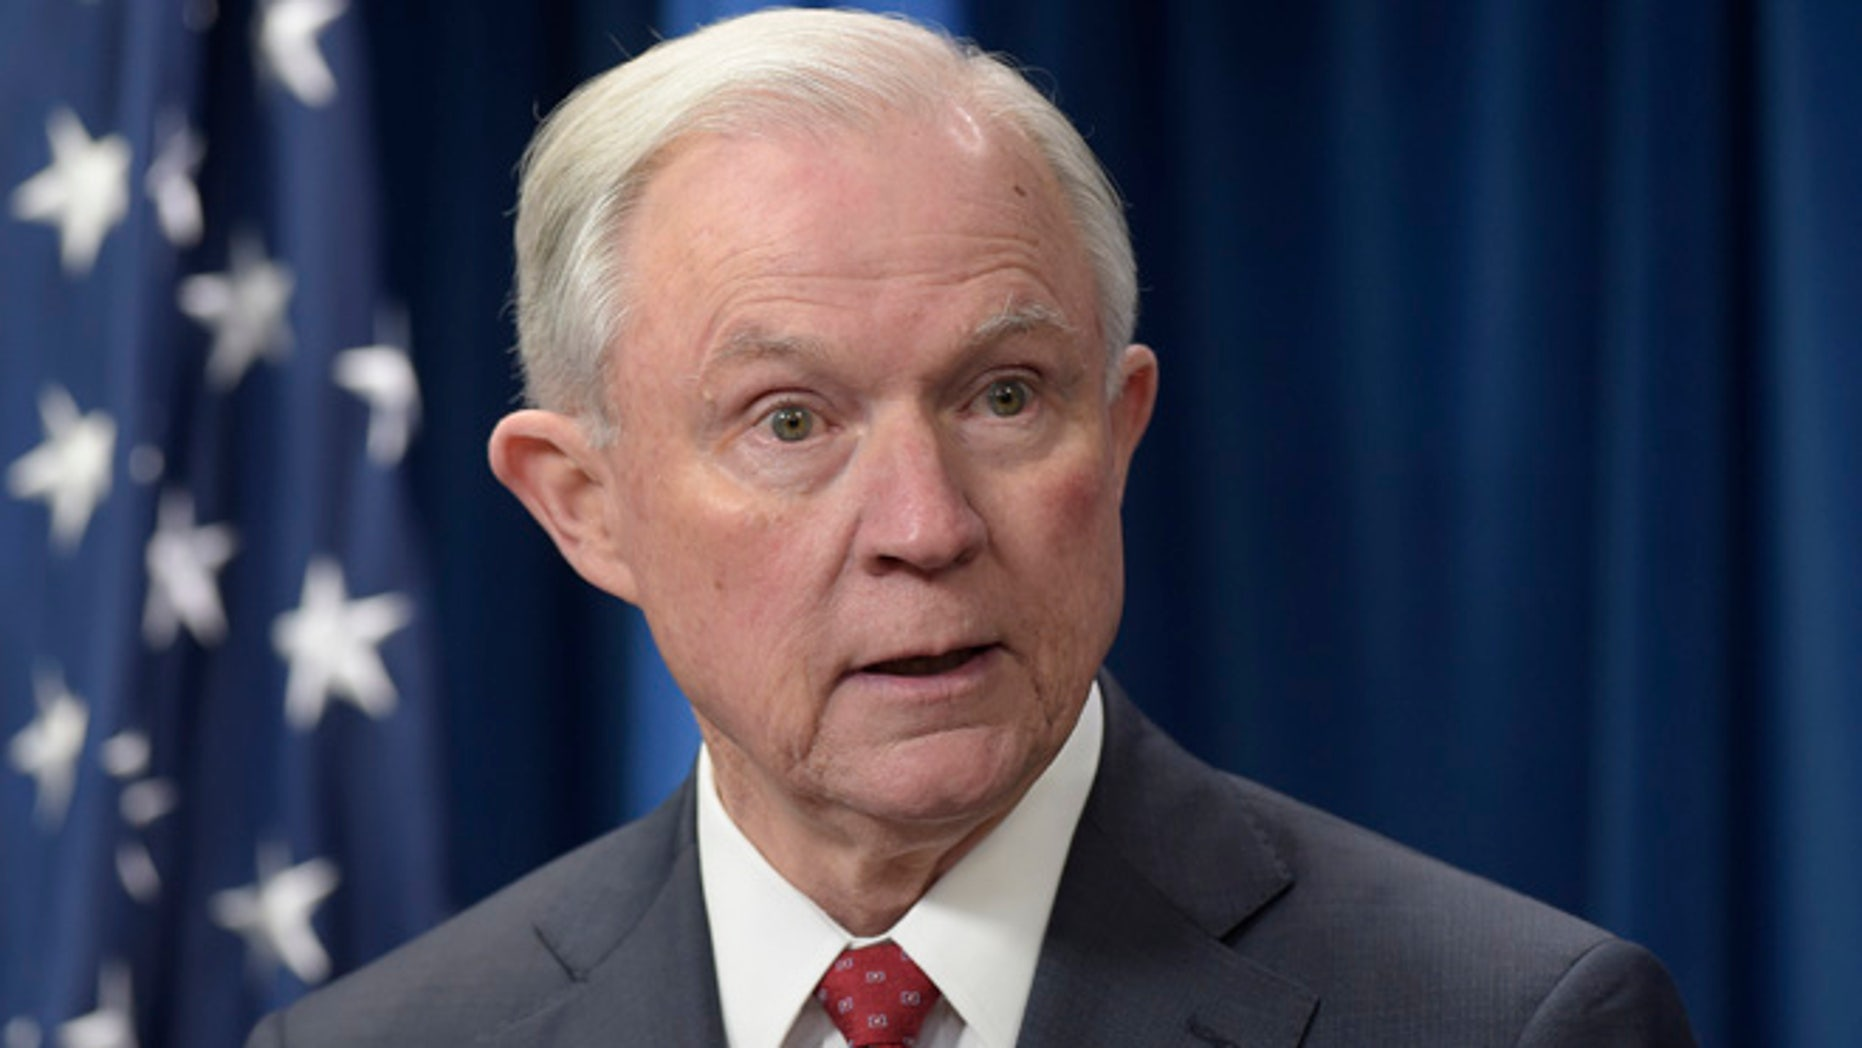 March 6, 2017: Attorney General Jeff Sessions speaks in Washington D.C.